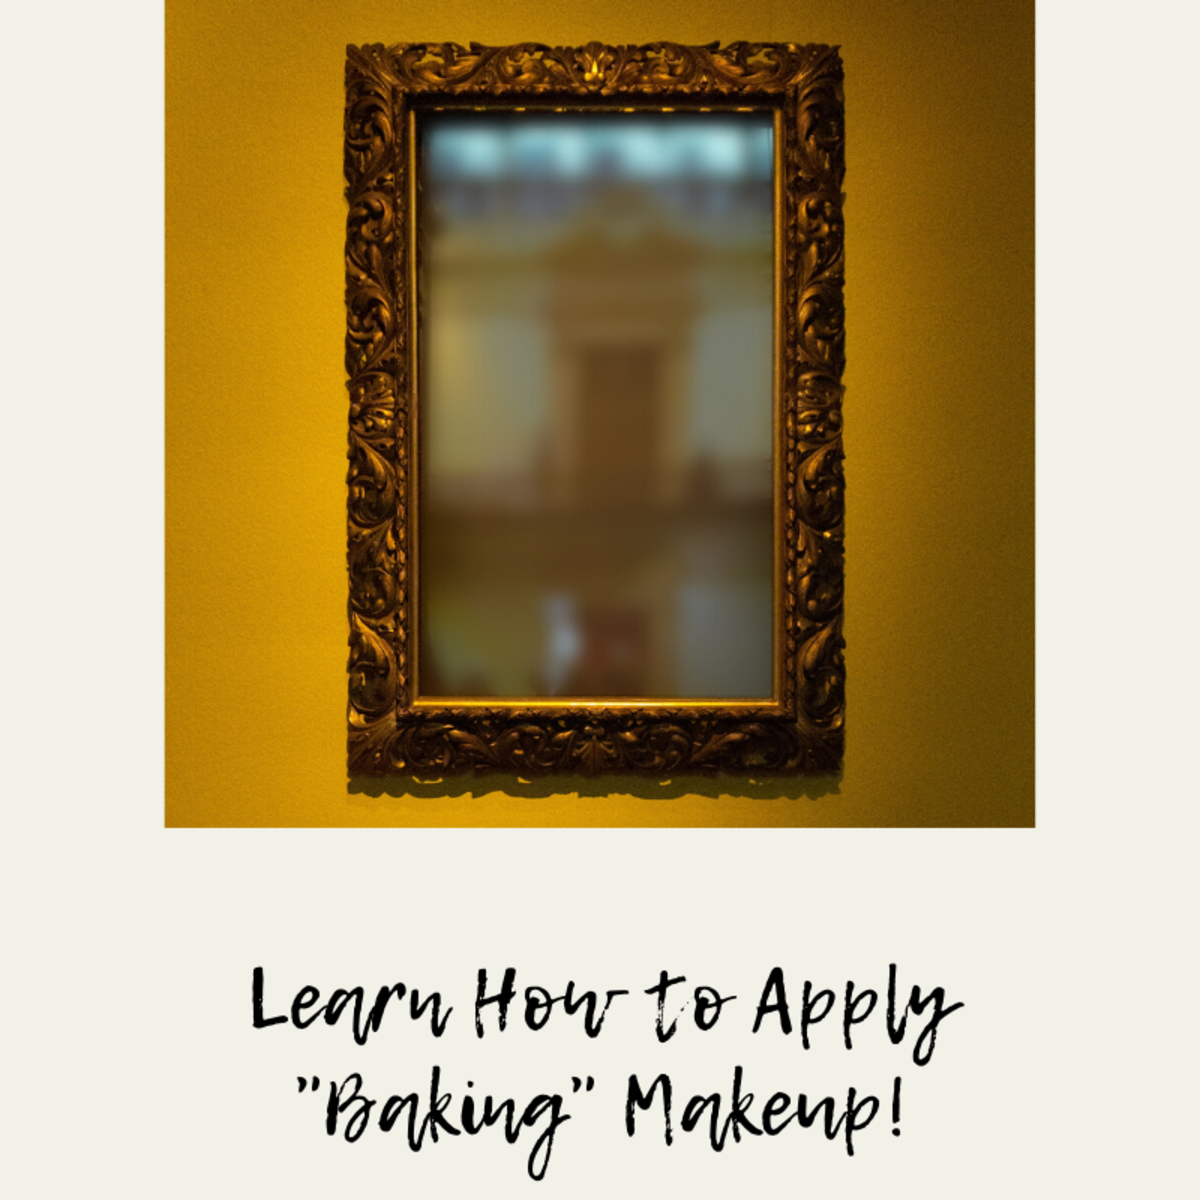 Learn How to Apply